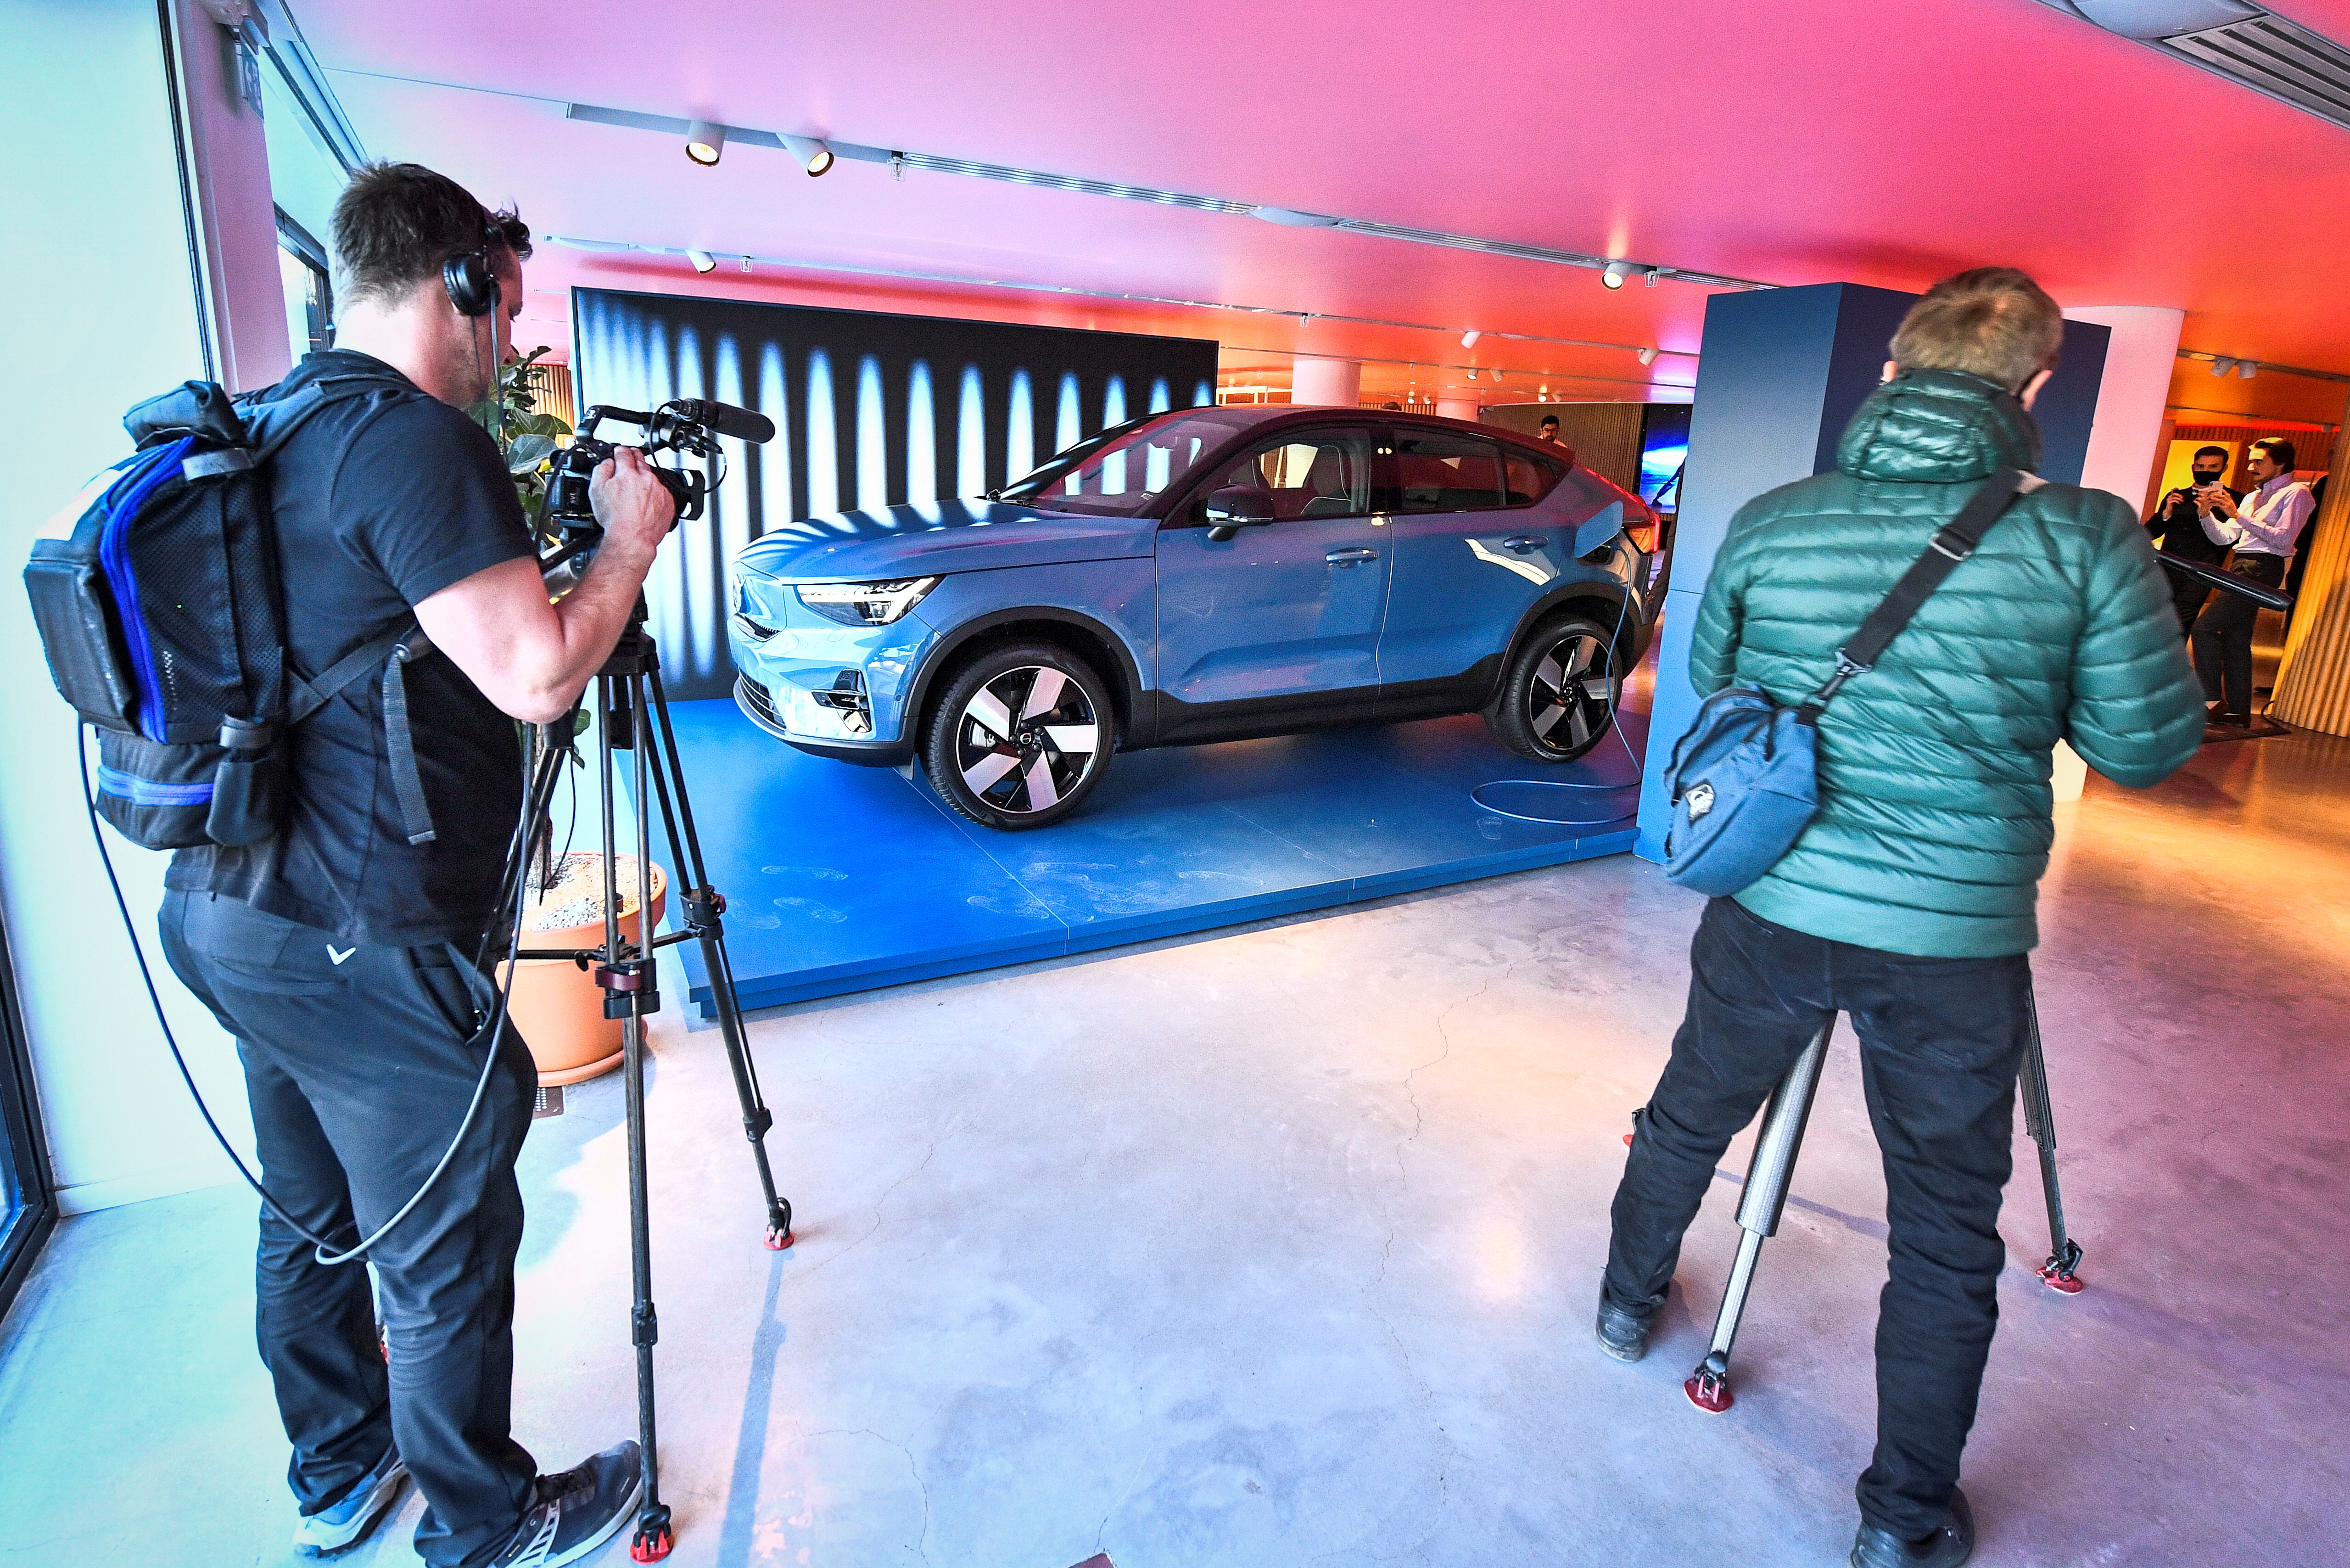 Members of the media stand as Volvo's new electric car Volvo C40 Recharge is presented in Stockholm, Sweden March 2, 2021. Claudio Breciani/TT News Agency/via REUTERS